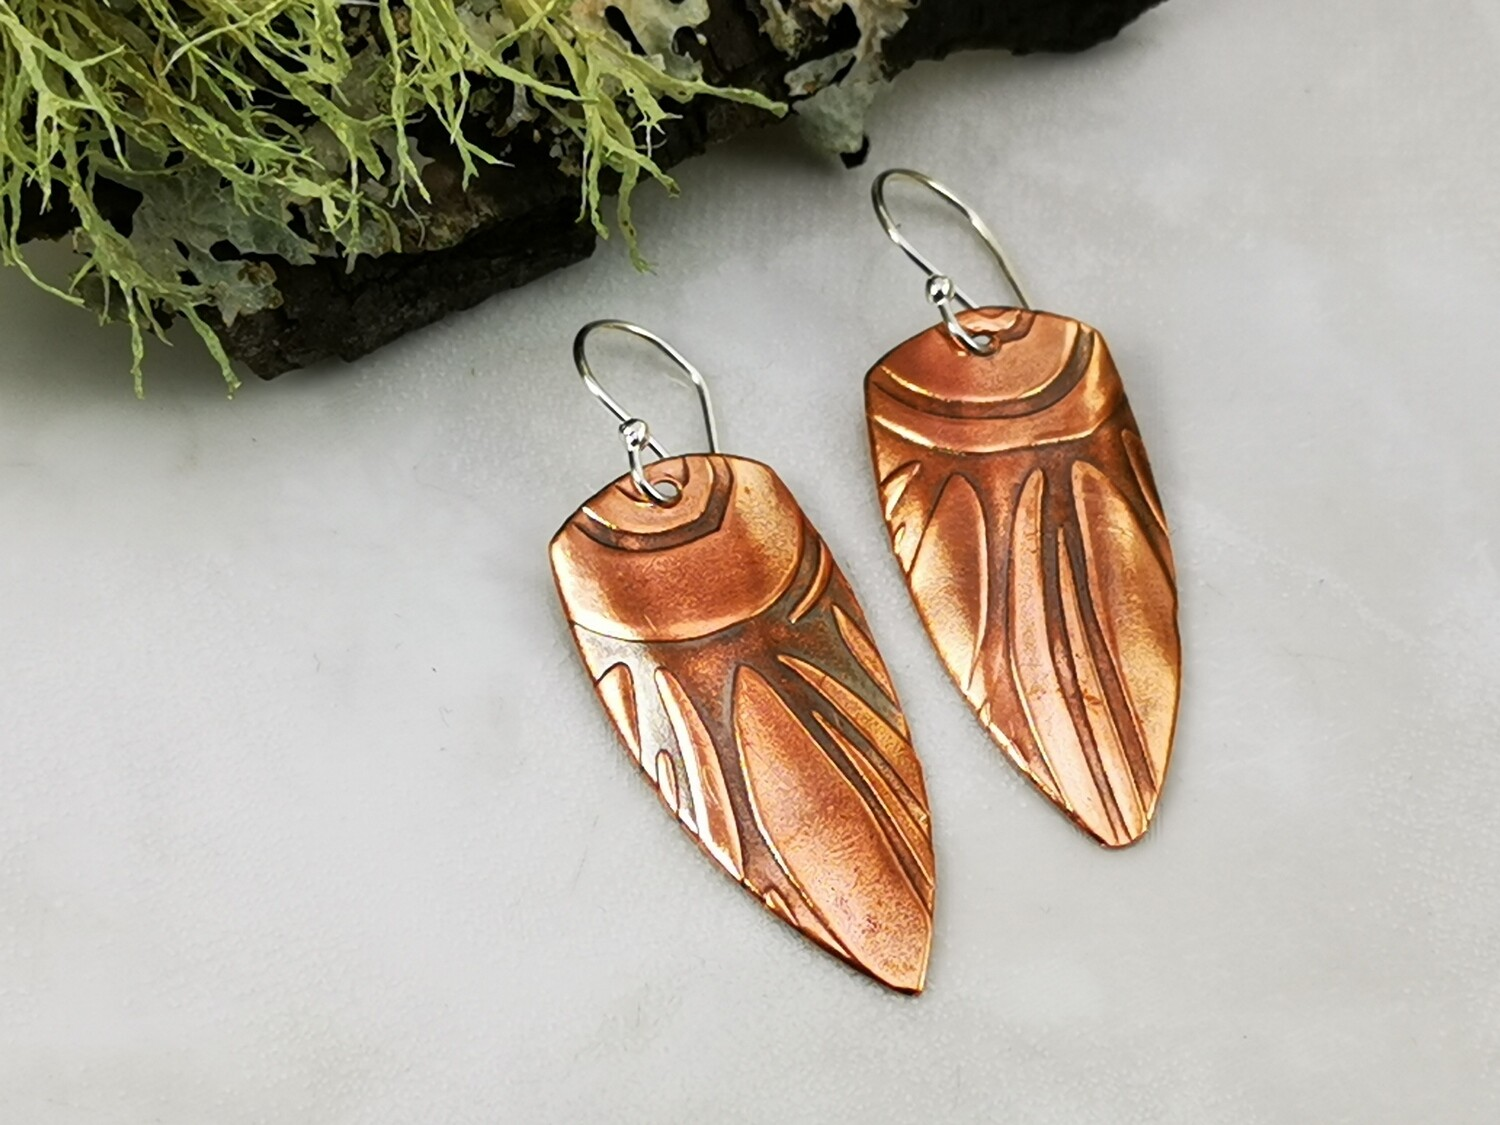 Flower Petals, Patterned Earrings, Copper Jewelry, Handmade, Patterned Copper, Patterned Metal, Dangle Earrings, One of a Kind, Gifts for Her